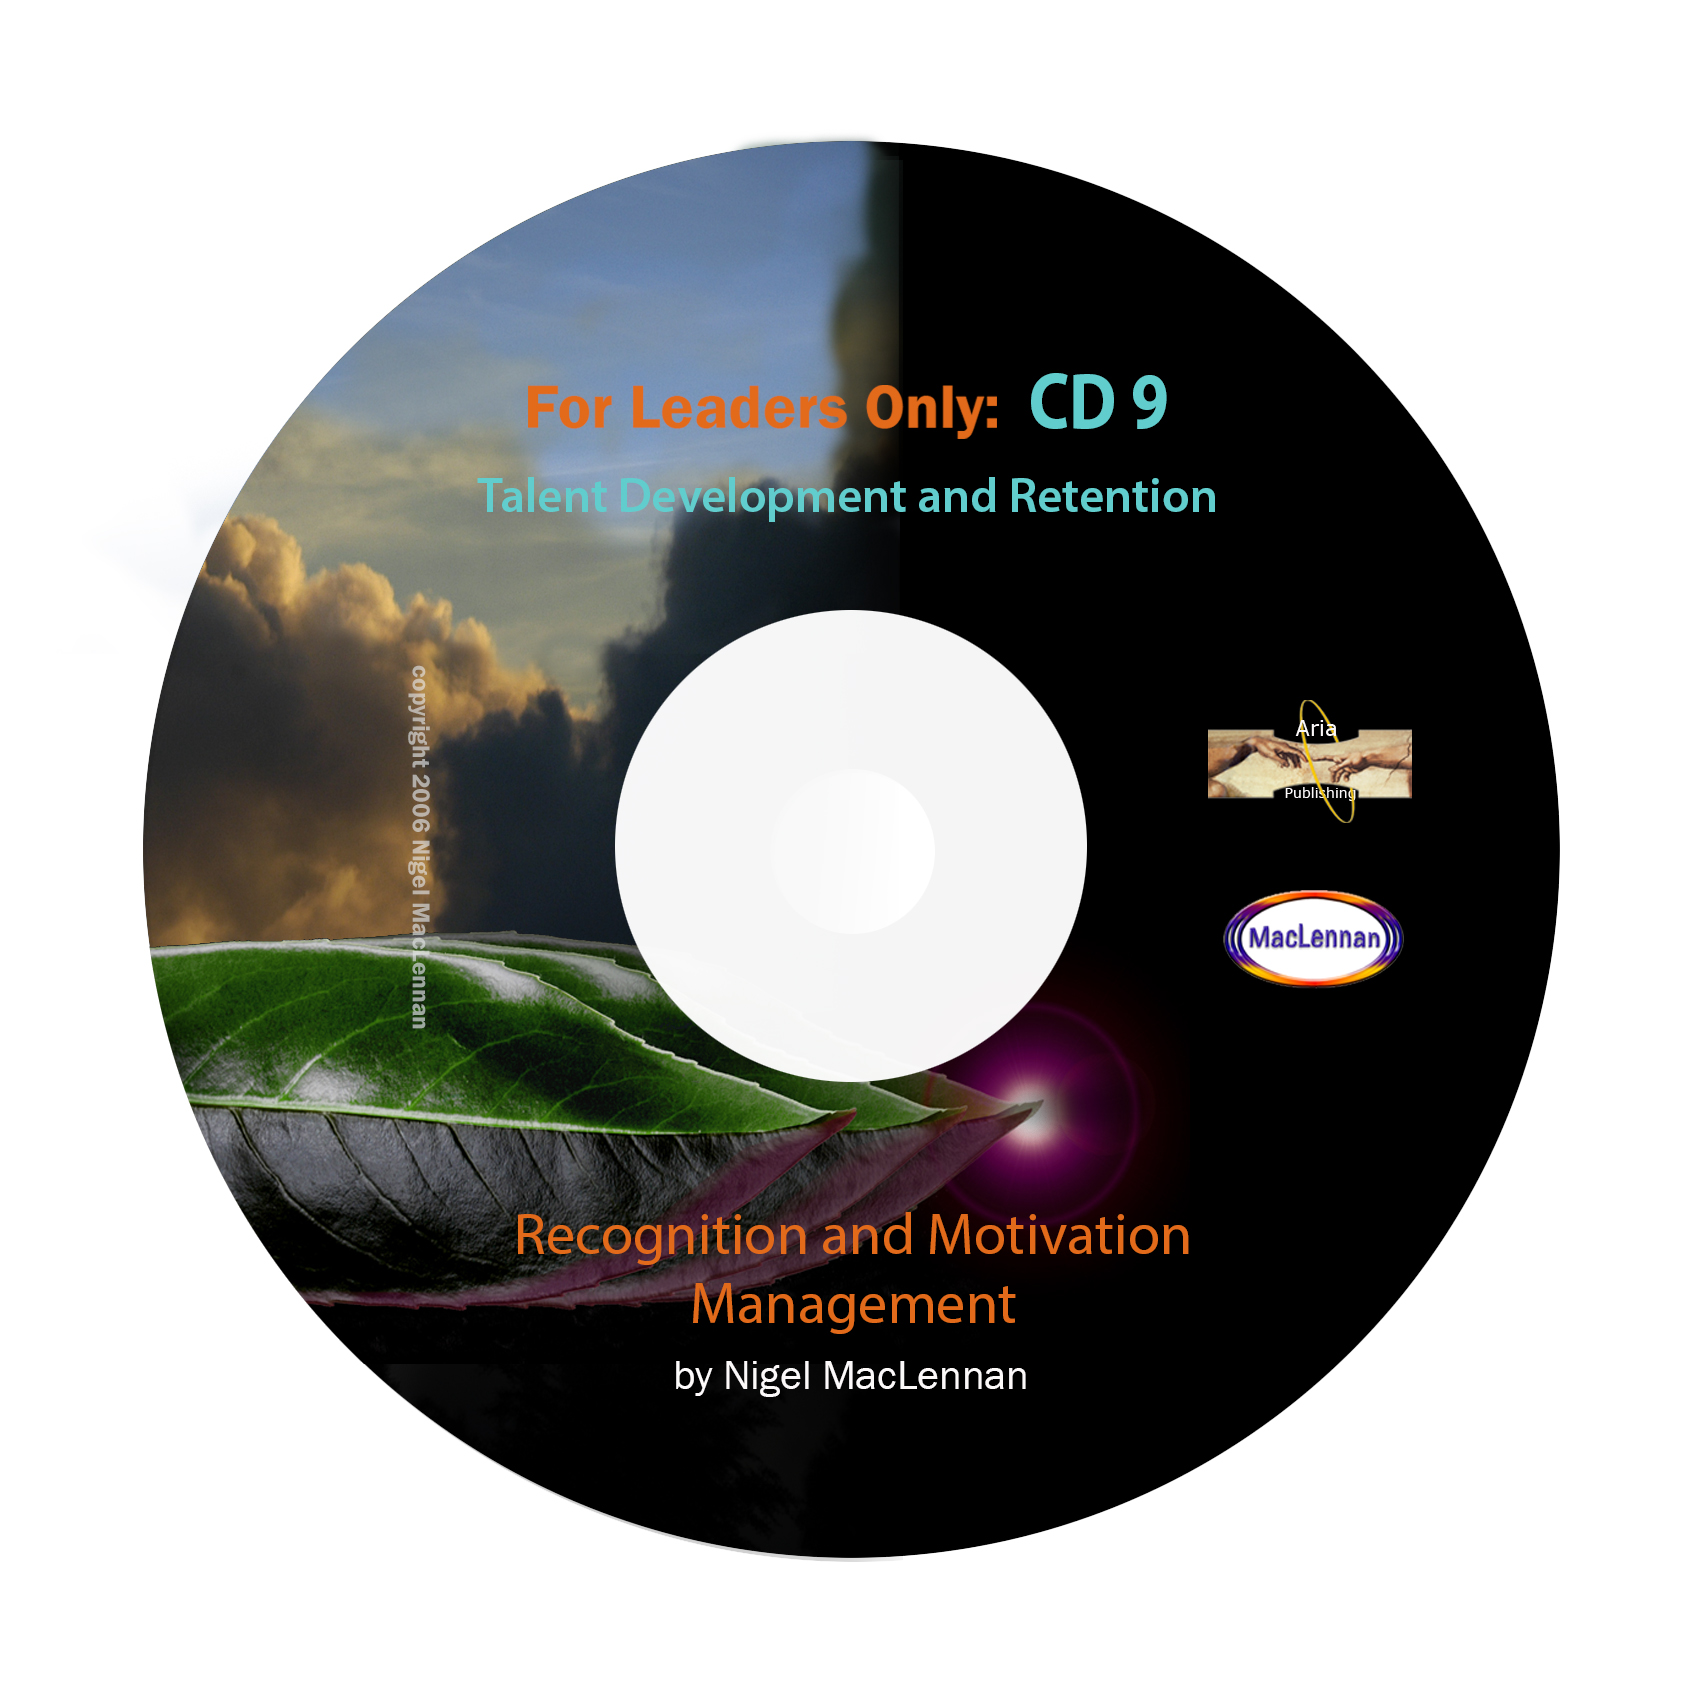 For Leaders Only - Recognition and Motivation Management CD